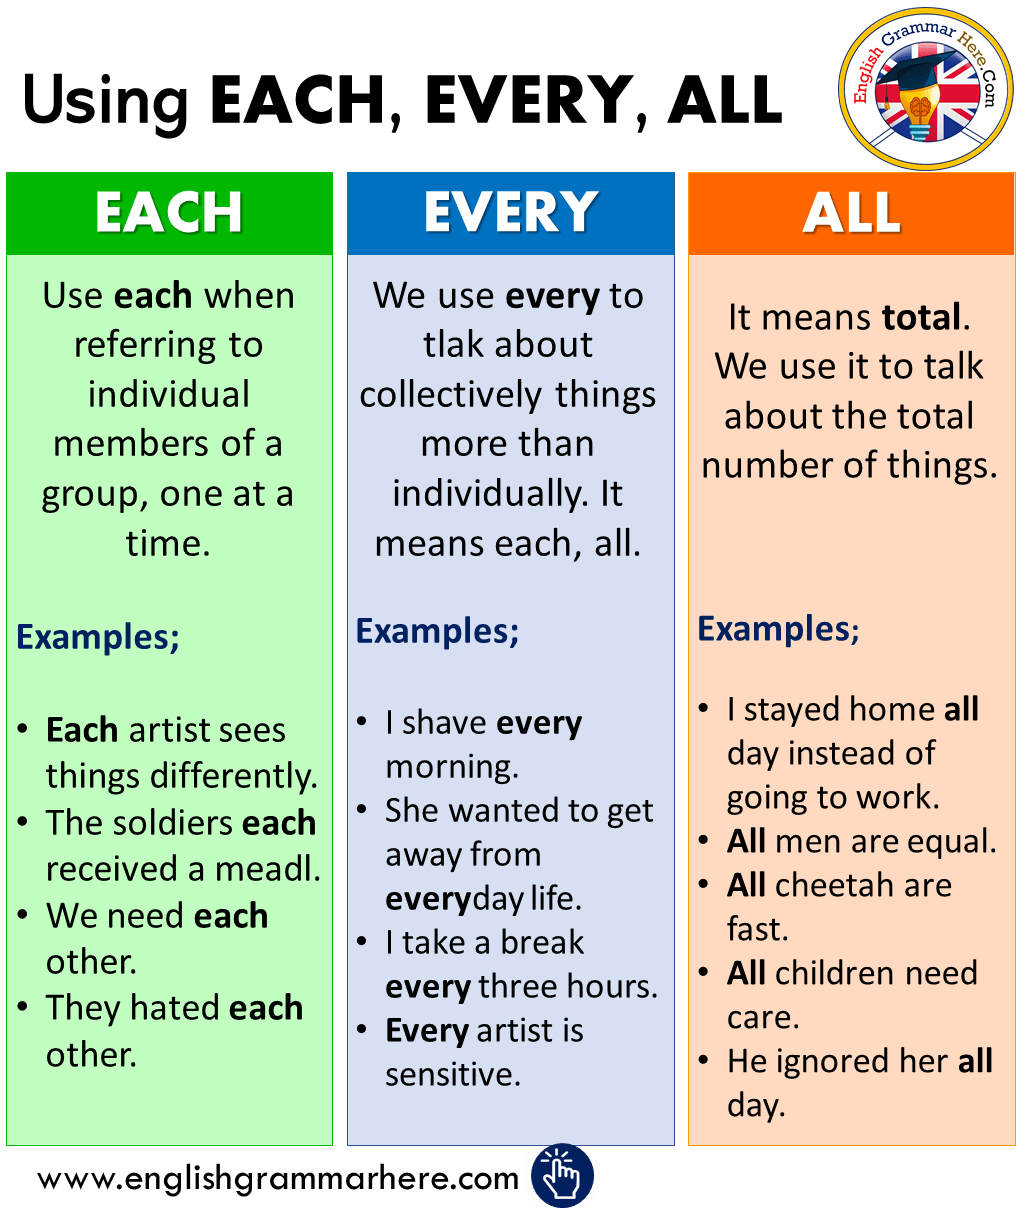 How to Use EACH, EVERY, ALL in English, Example Sentences